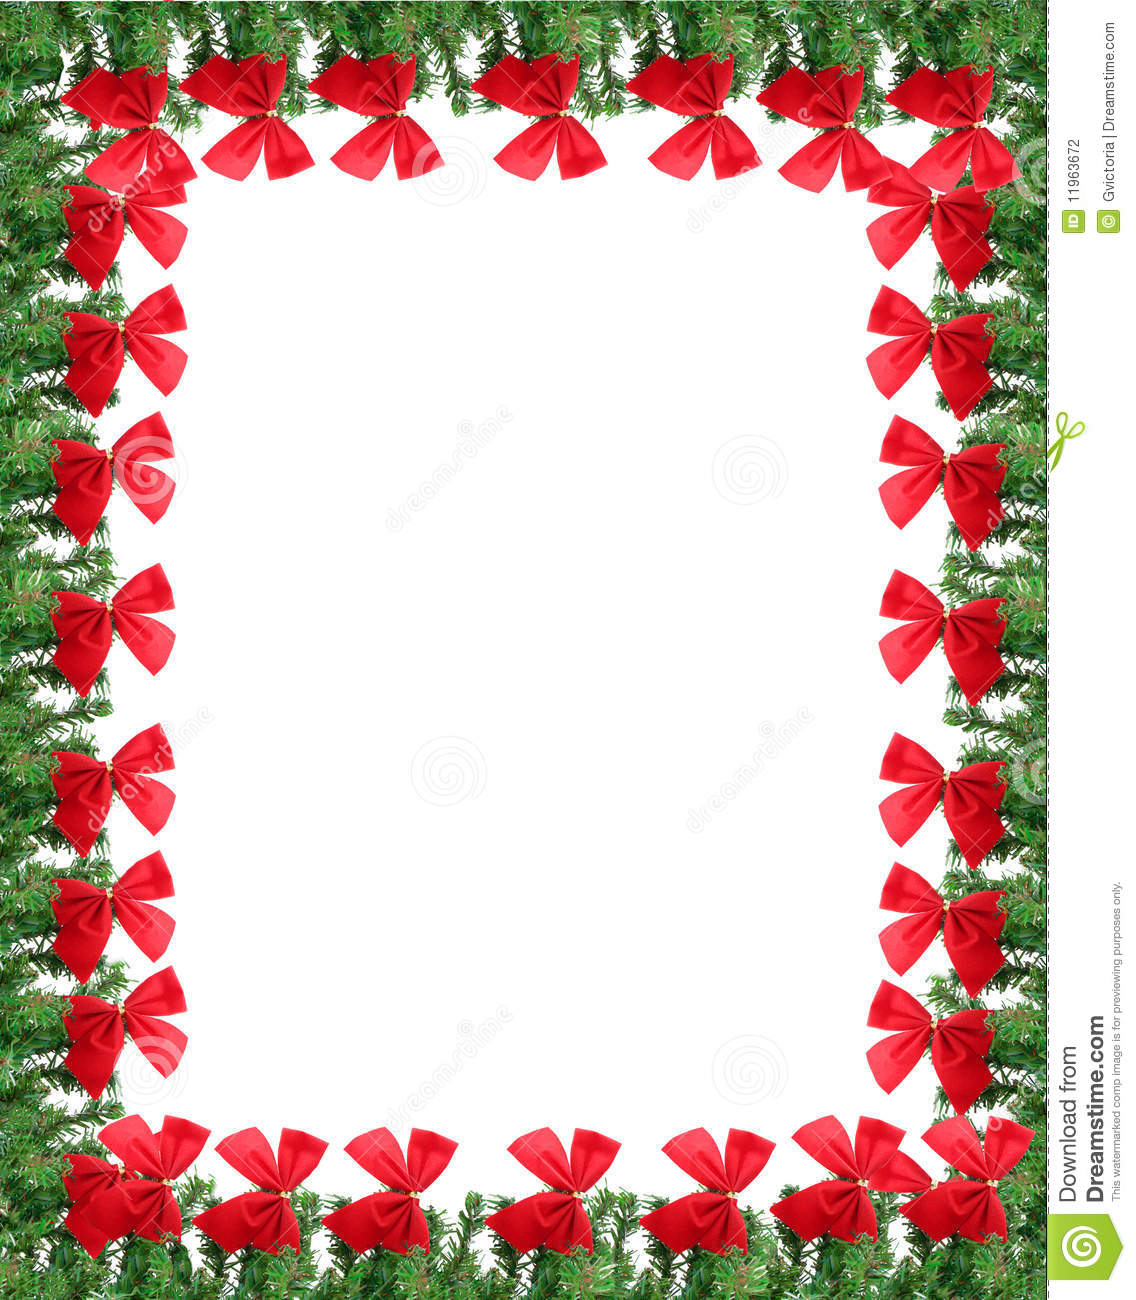 Christmas Card Border.Christmas Greeting Card Border Stock Photo Image Of Bows